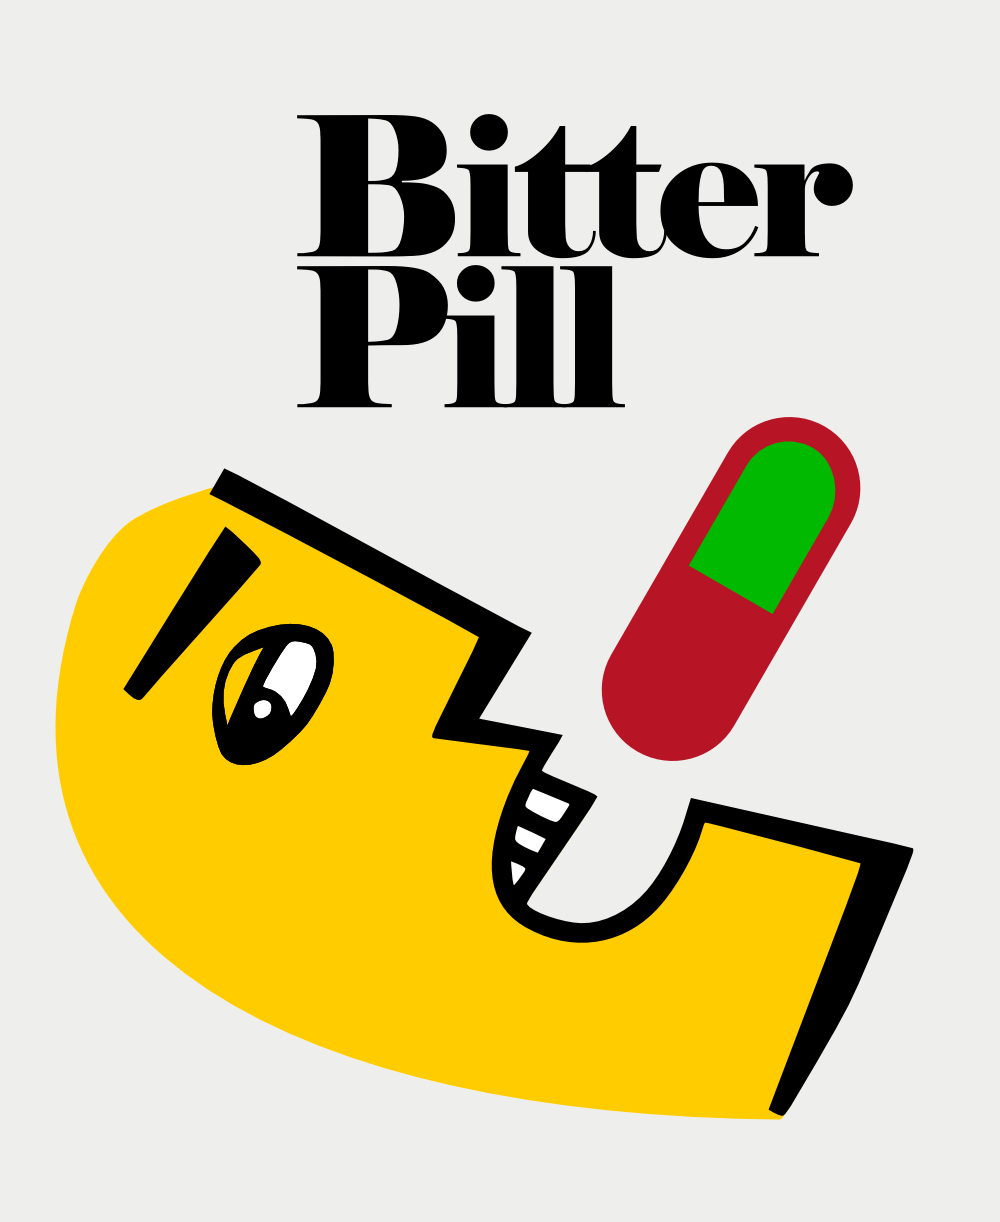 Bitter Pill - The truth can be bitterer than a sweet illusion